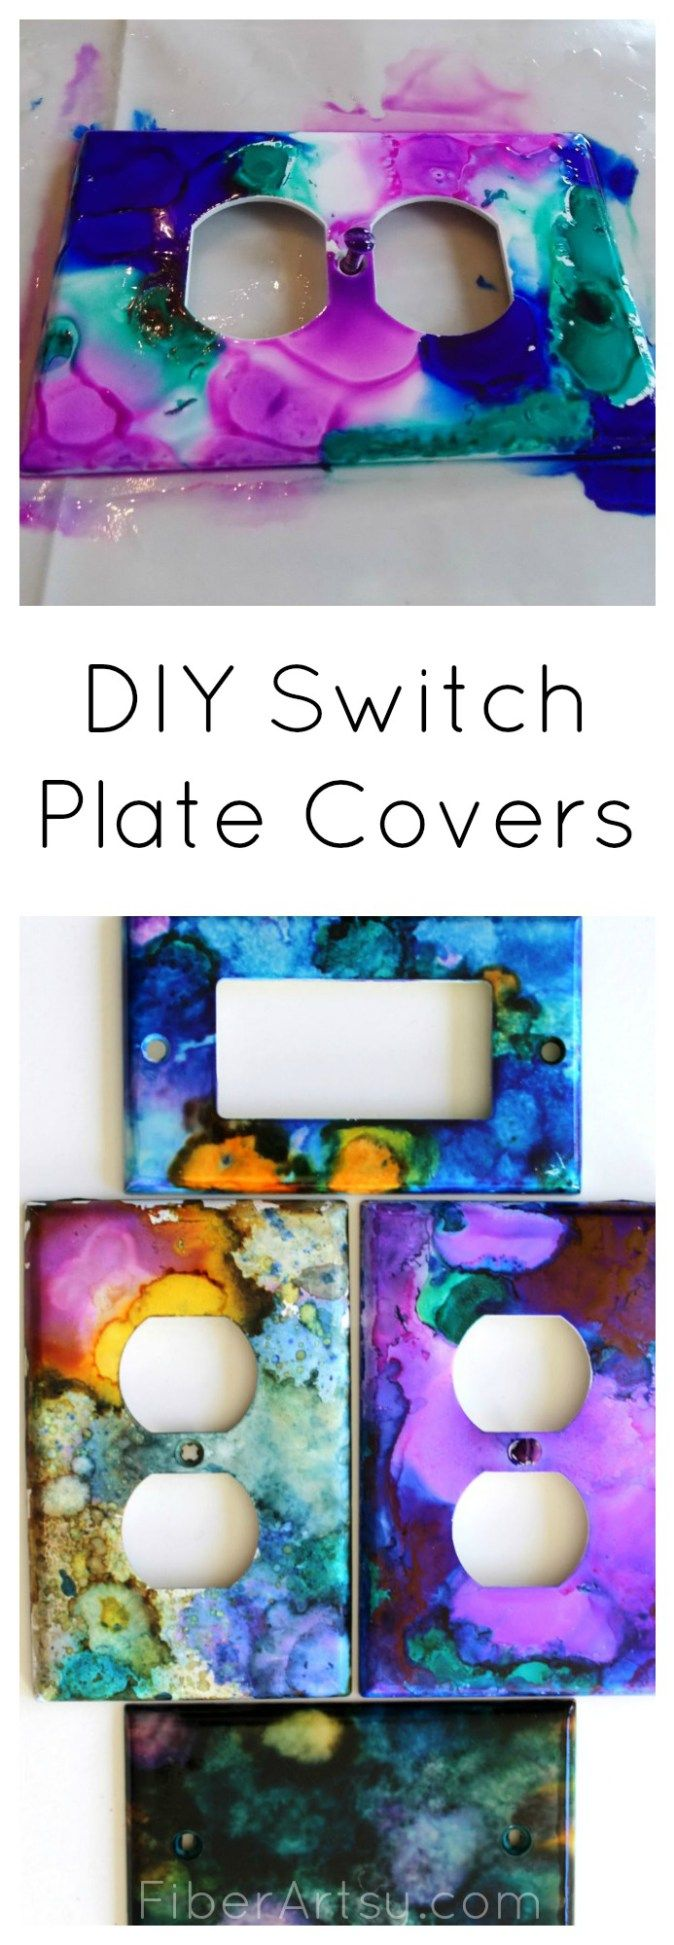 Arts and crafts switch plate covers - Diy Switch Plate Covers Fiberartsy Com Long Collage